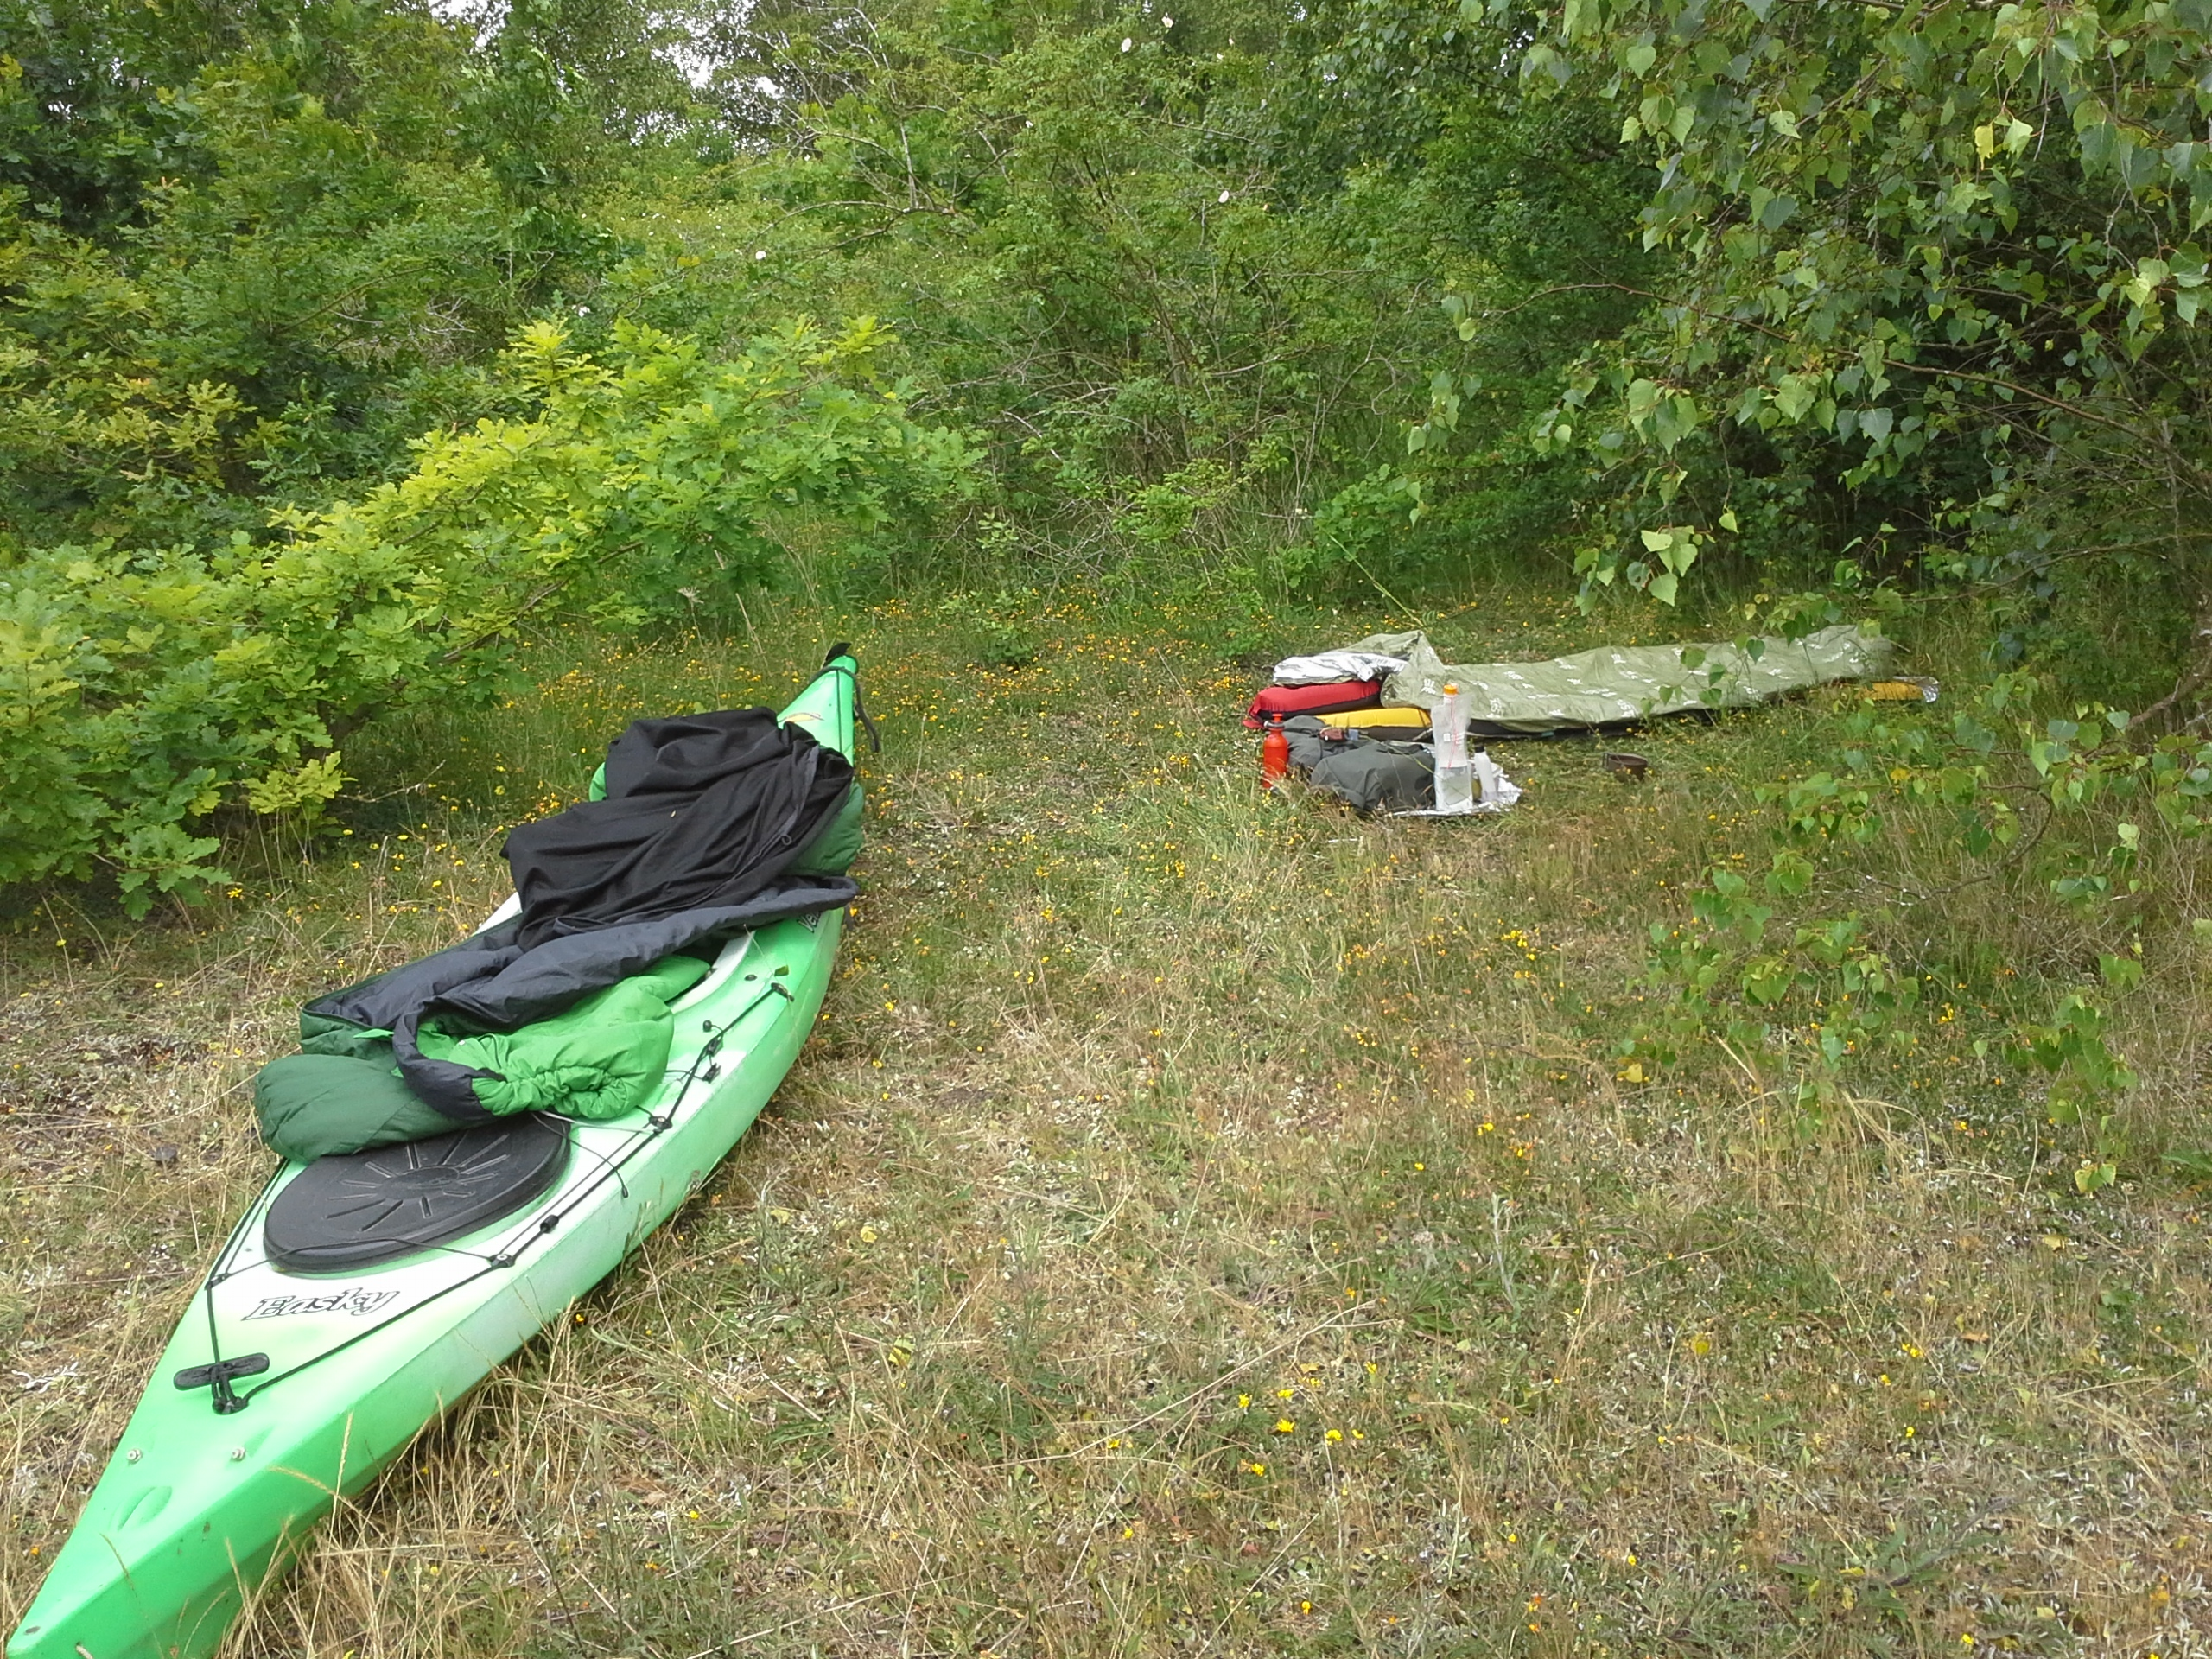 Bivvi site and kayak